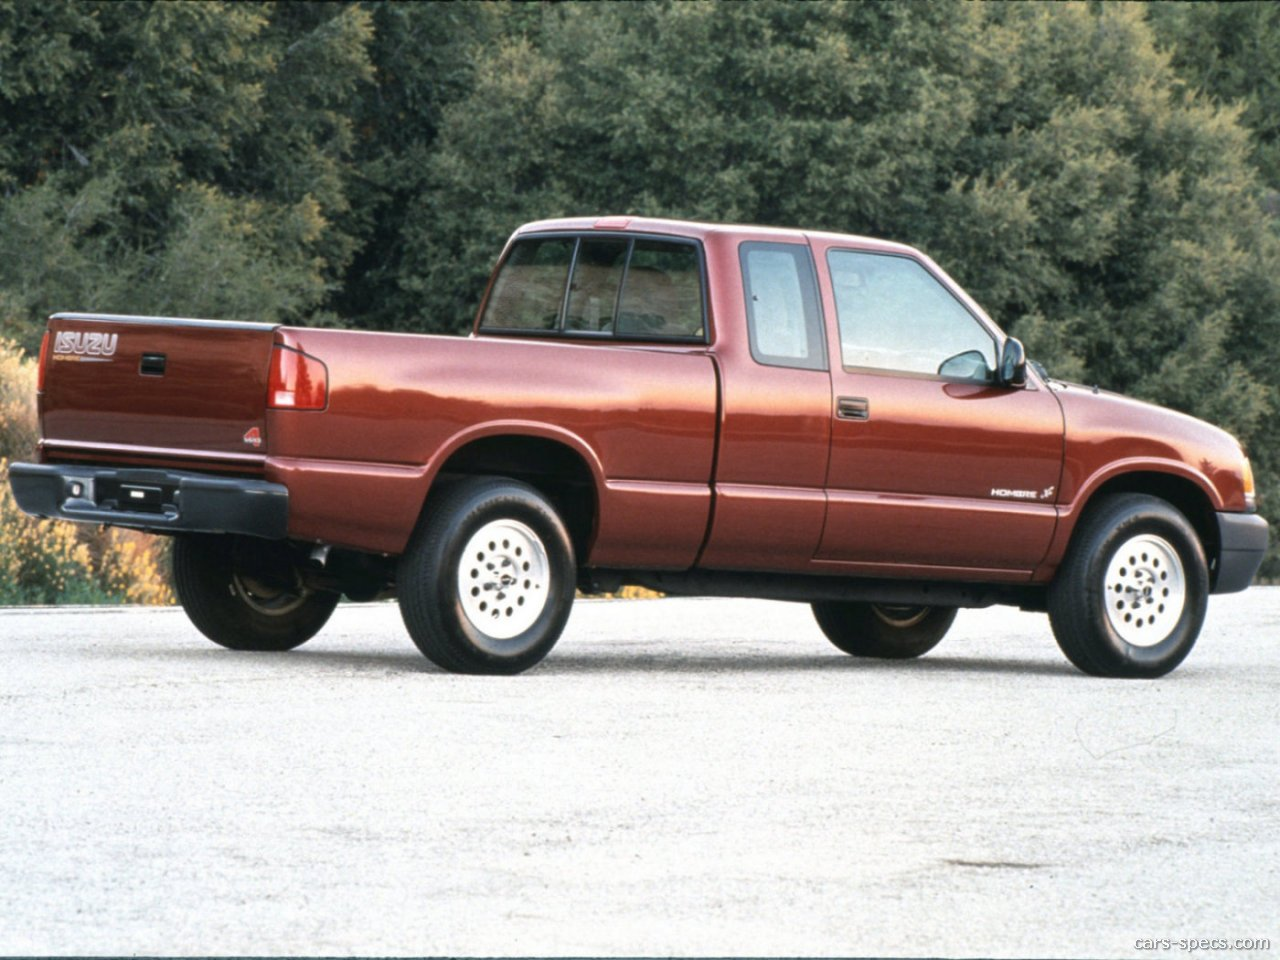 1998 Isuzu Hombre XS Extended Cab Pickup 2.2L 4-cyl. 5-speed Manual